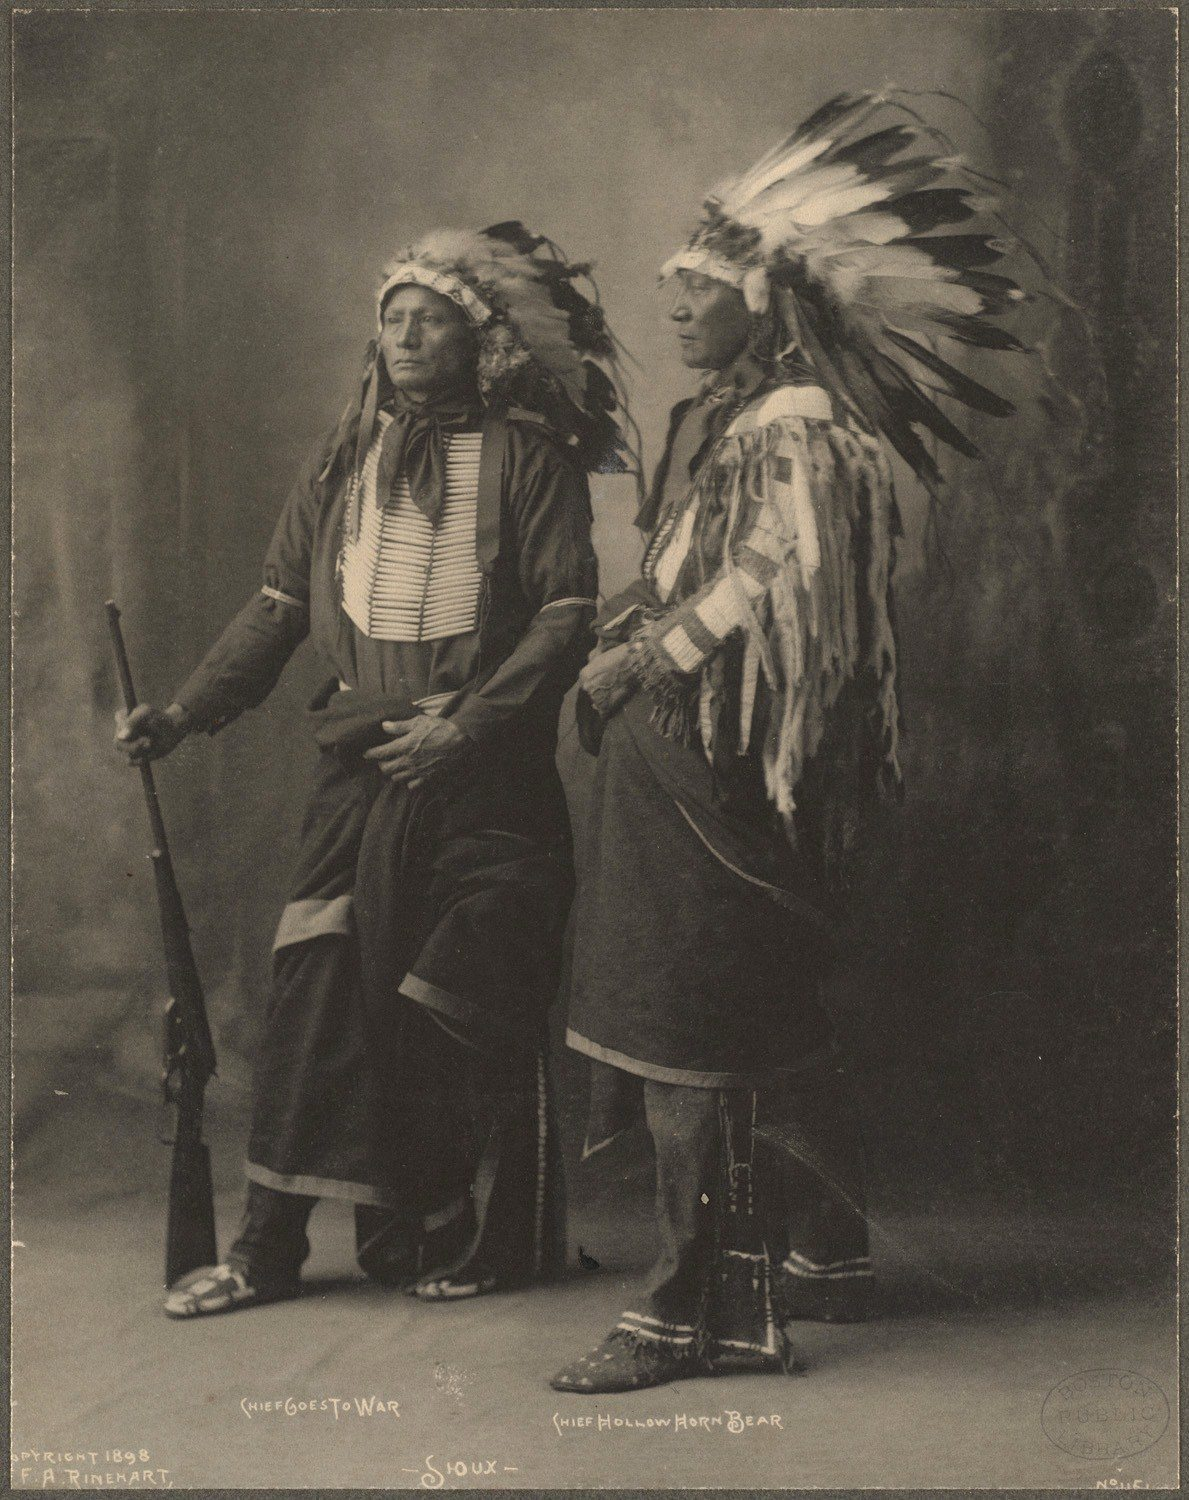 Chief Goes To War, Chief Hollow Horn Bear, Sioux, 1899